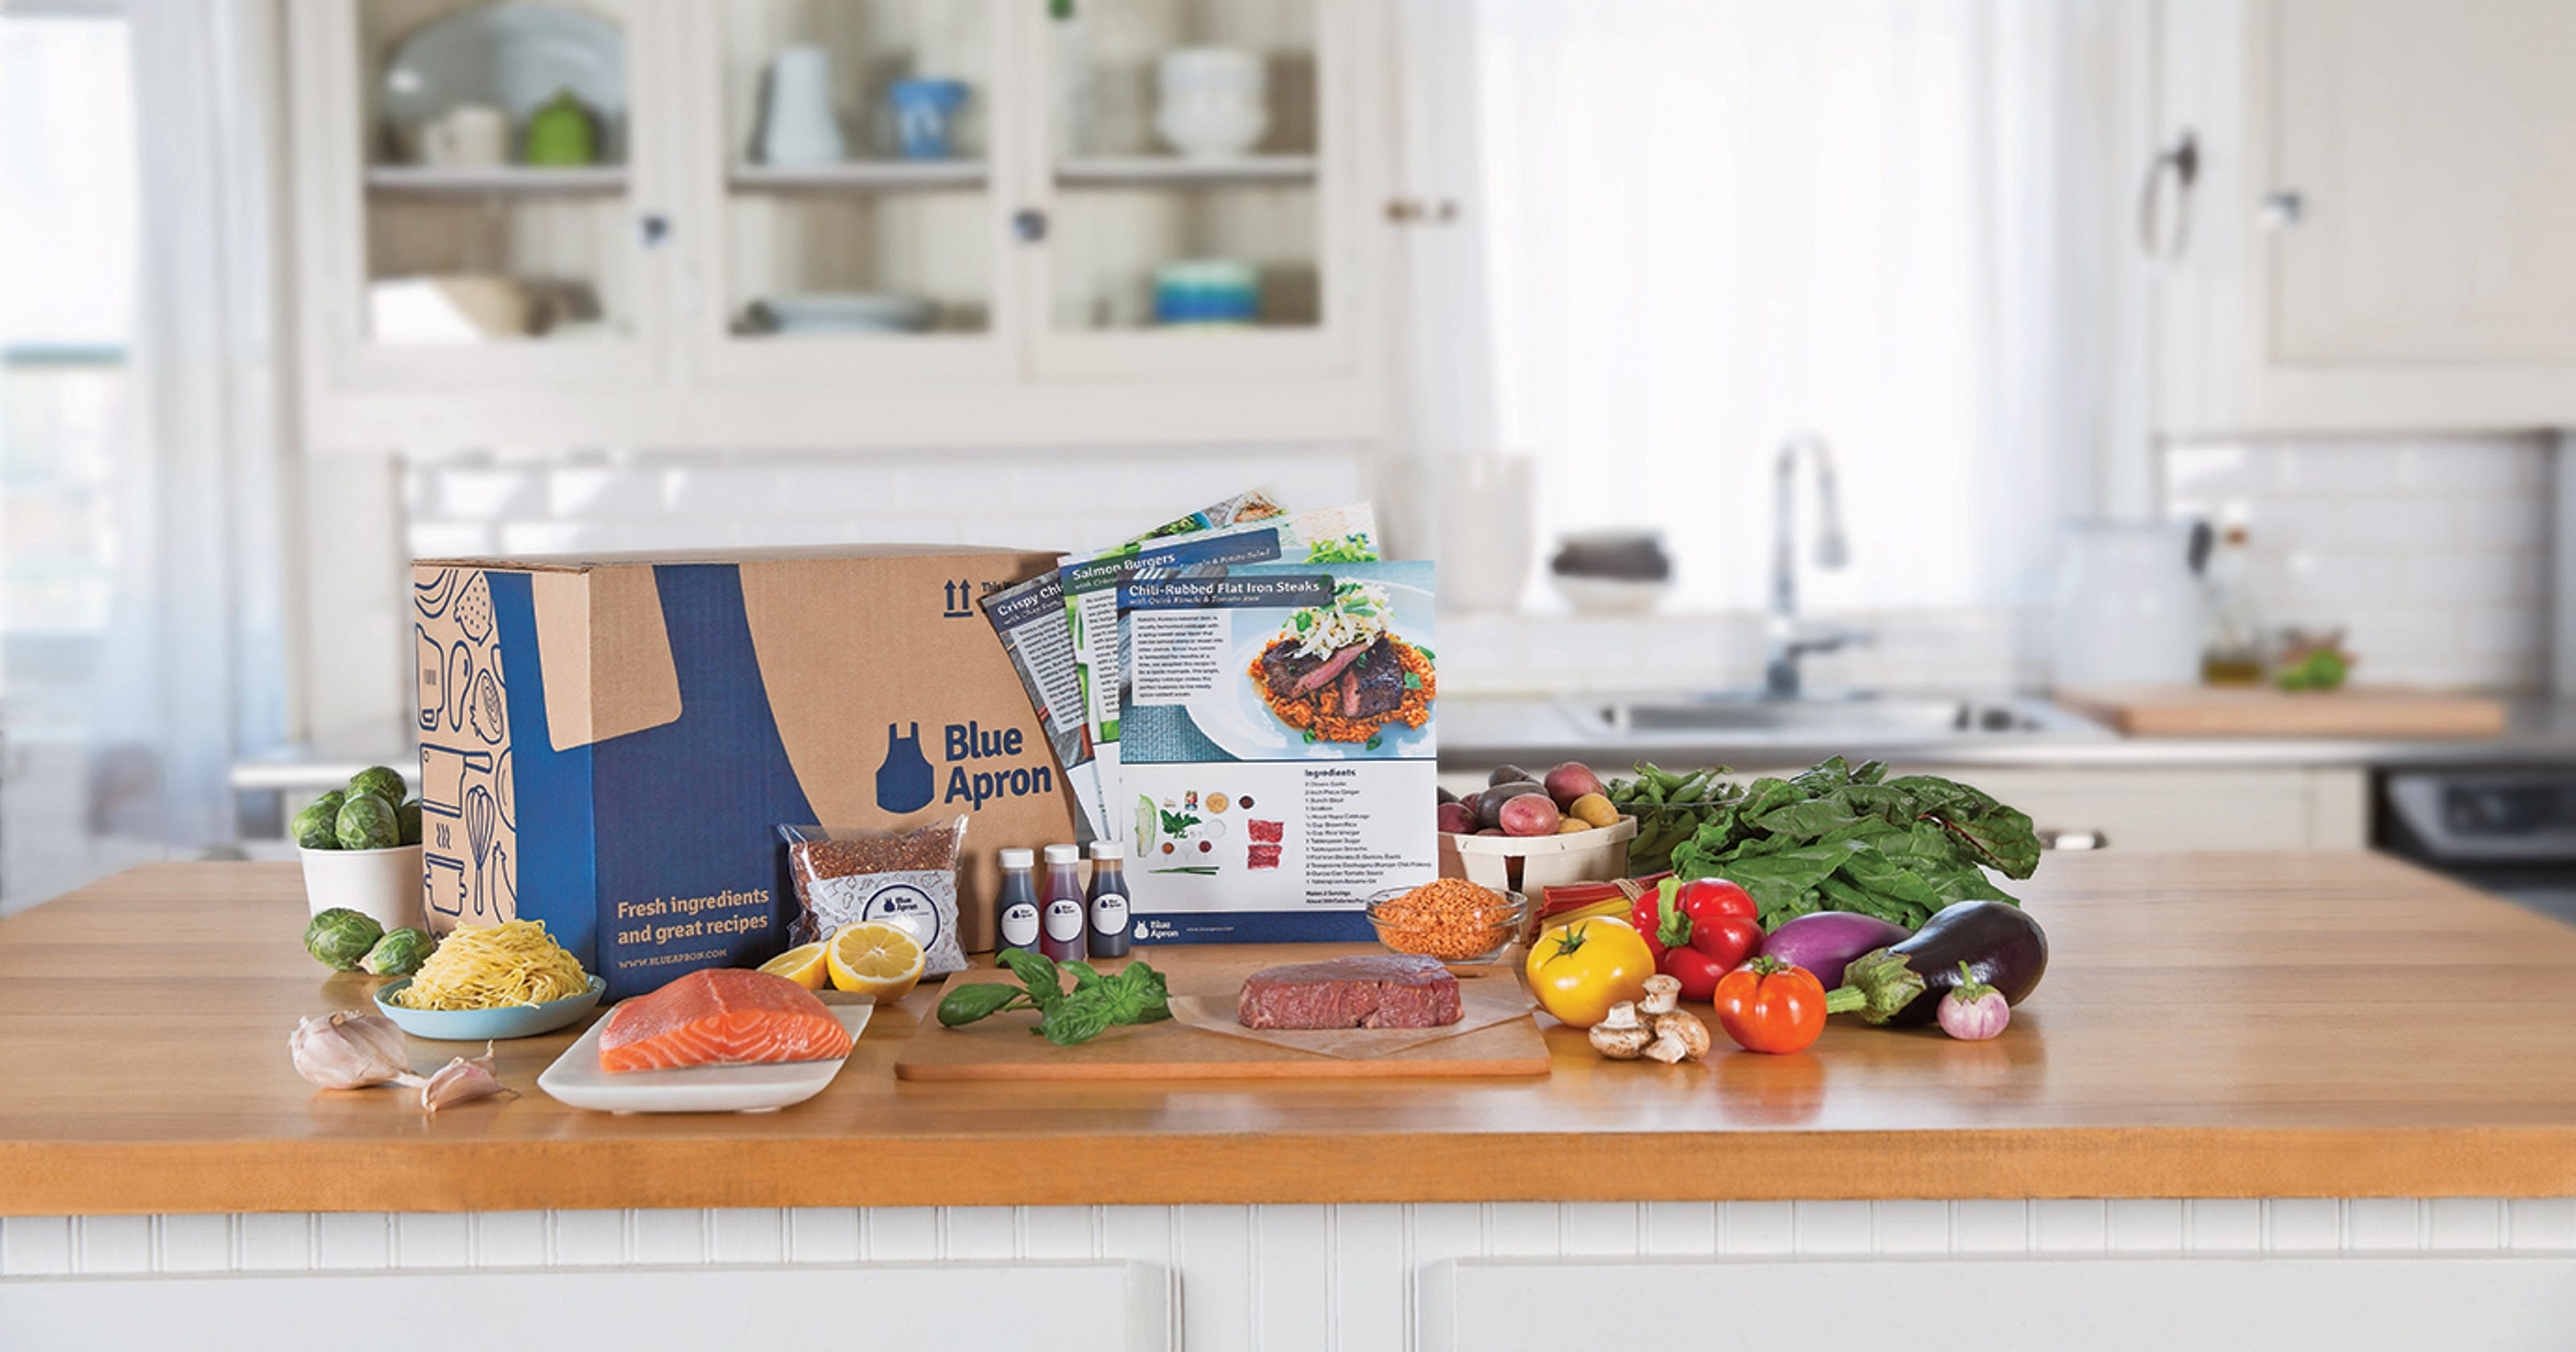 Blue Apron Prices Ipo At 15 17 Per Share To Raise 500m